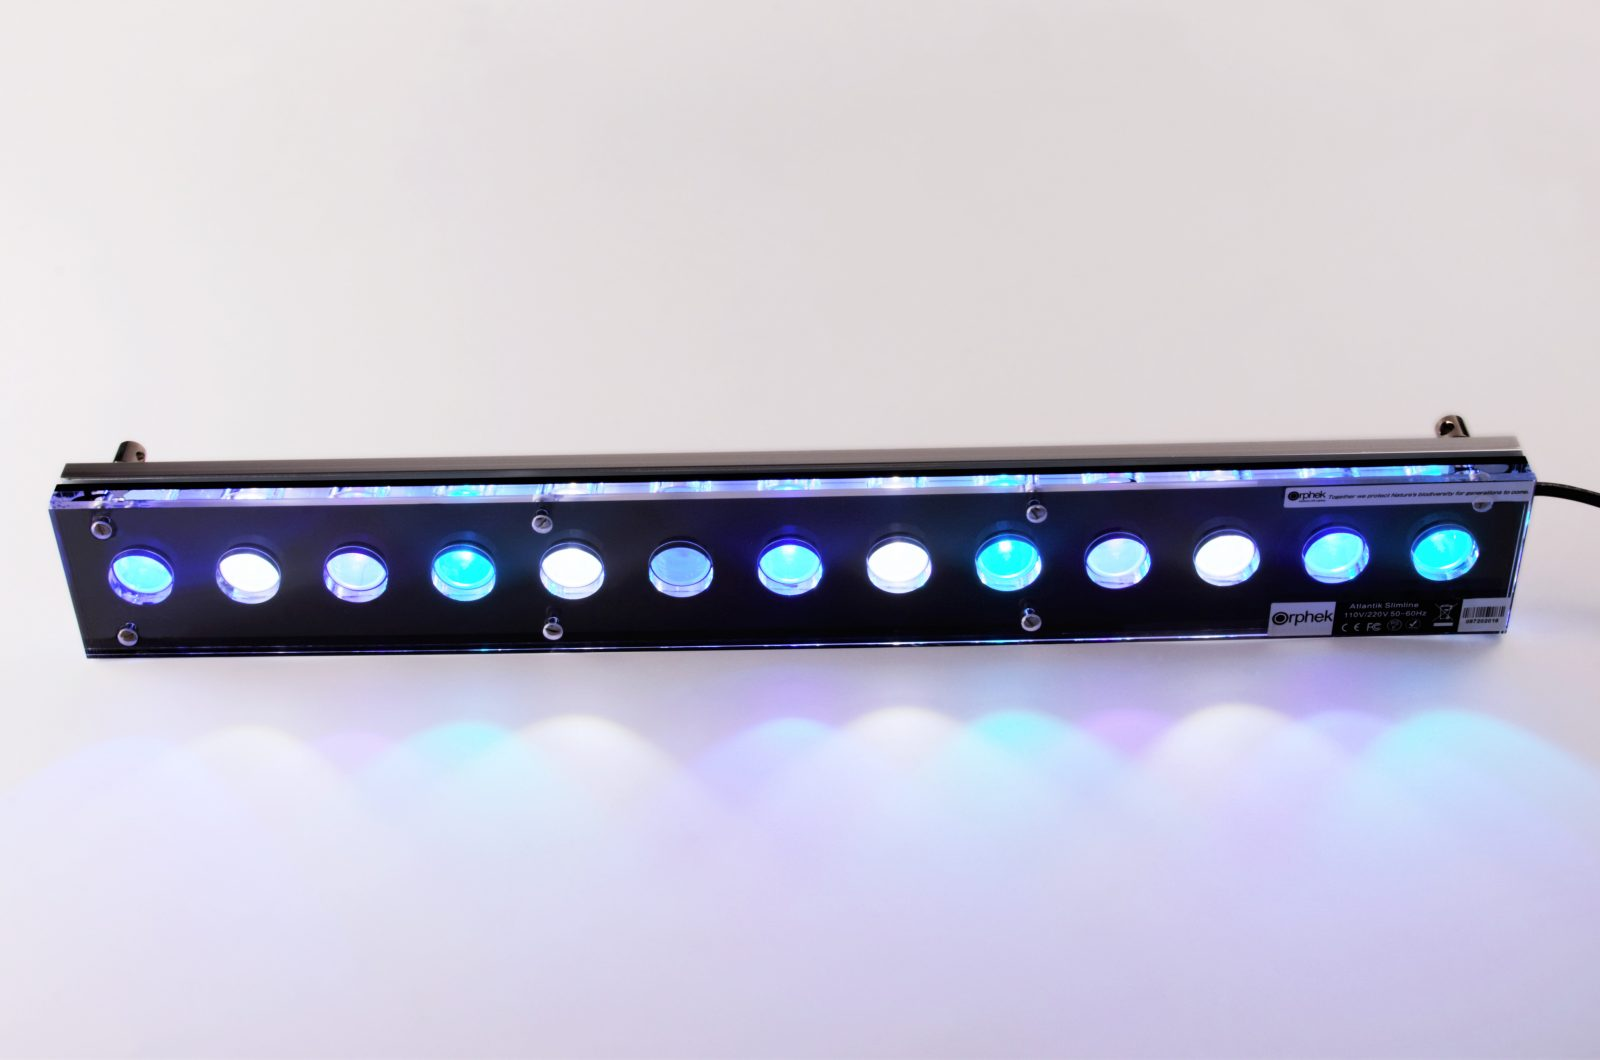 آیفون-آکواریوم-LED-Lighting-Slimline-V4-Reef